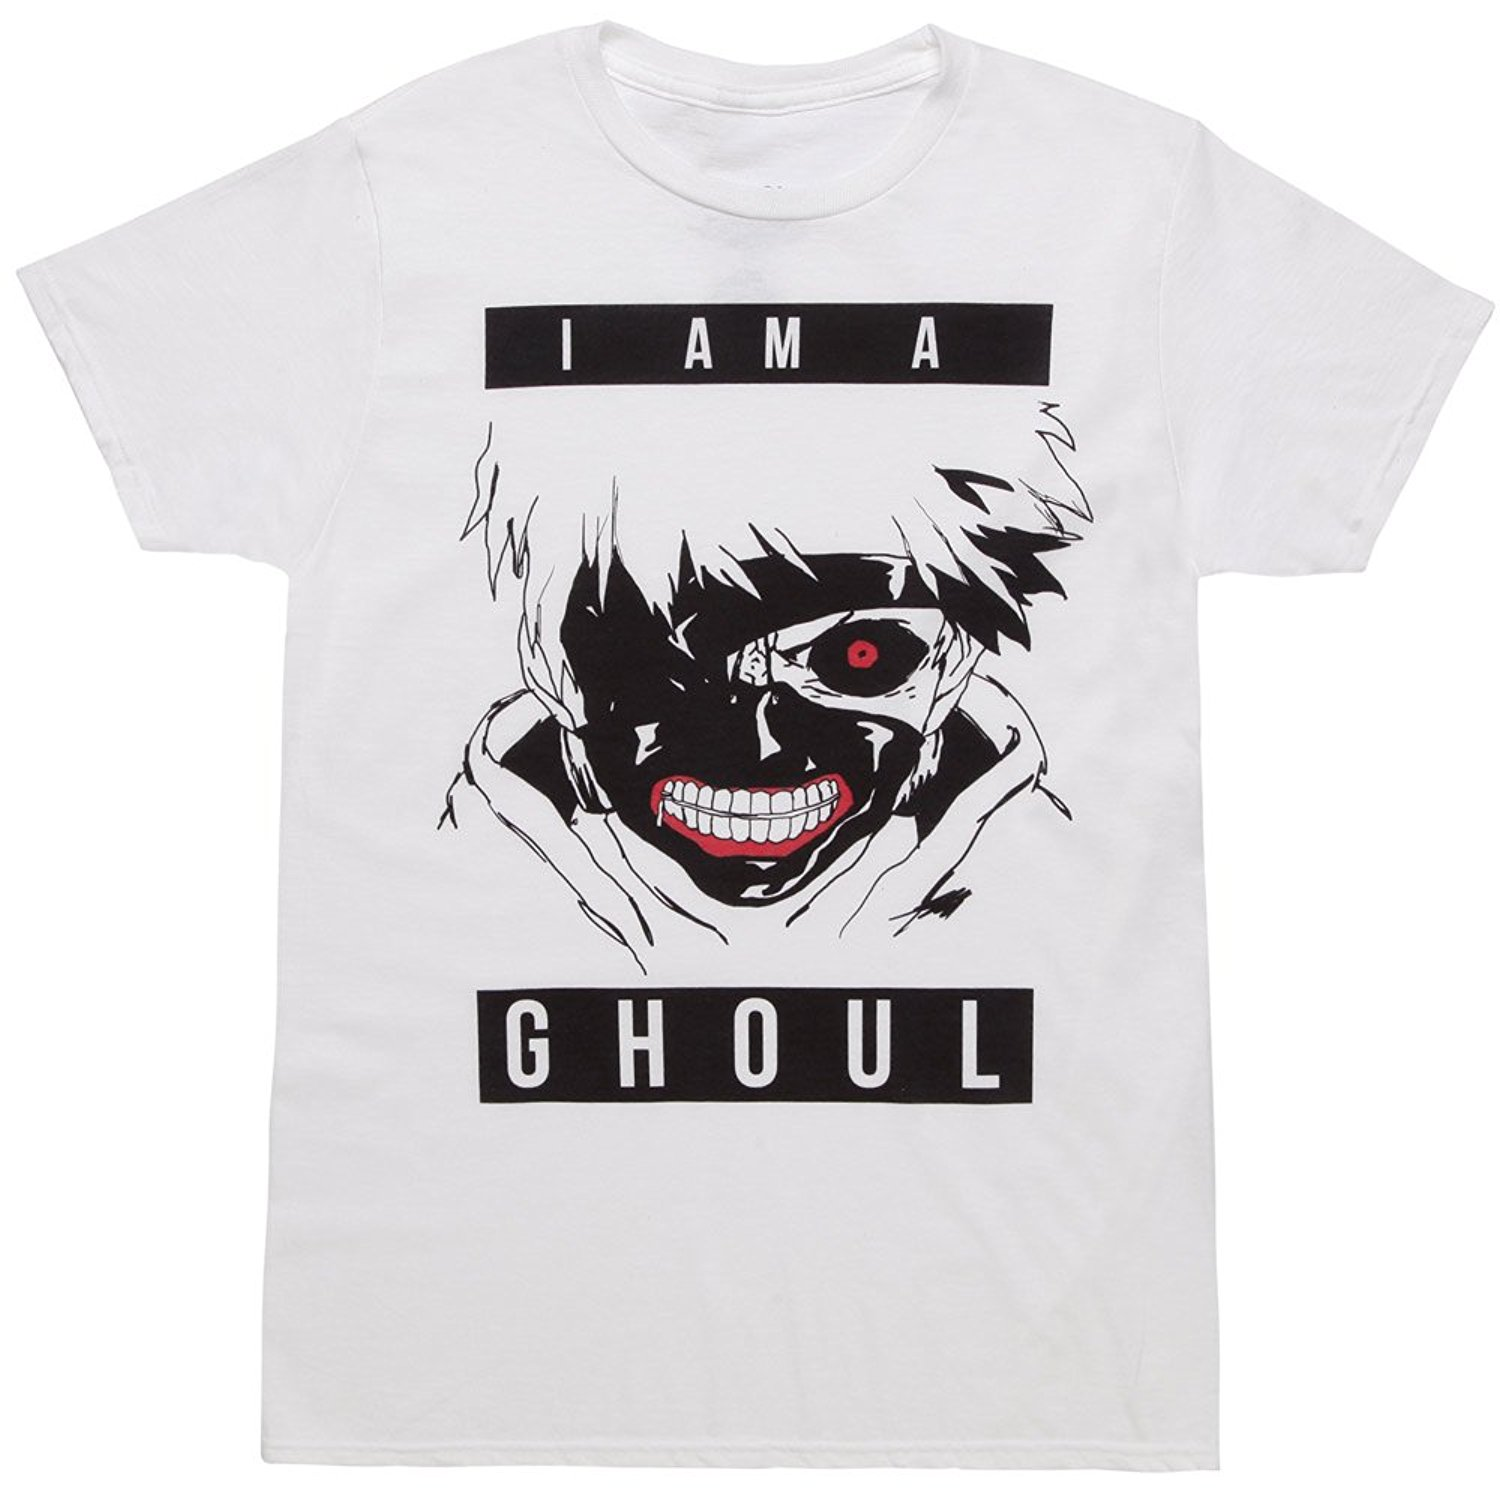 Tokyo Ghoul: I Am A Ghoul Mens White T-Shirt Printed Summer Style Tees Male Harajuku Top Fitness Brand Clothing T Shirt